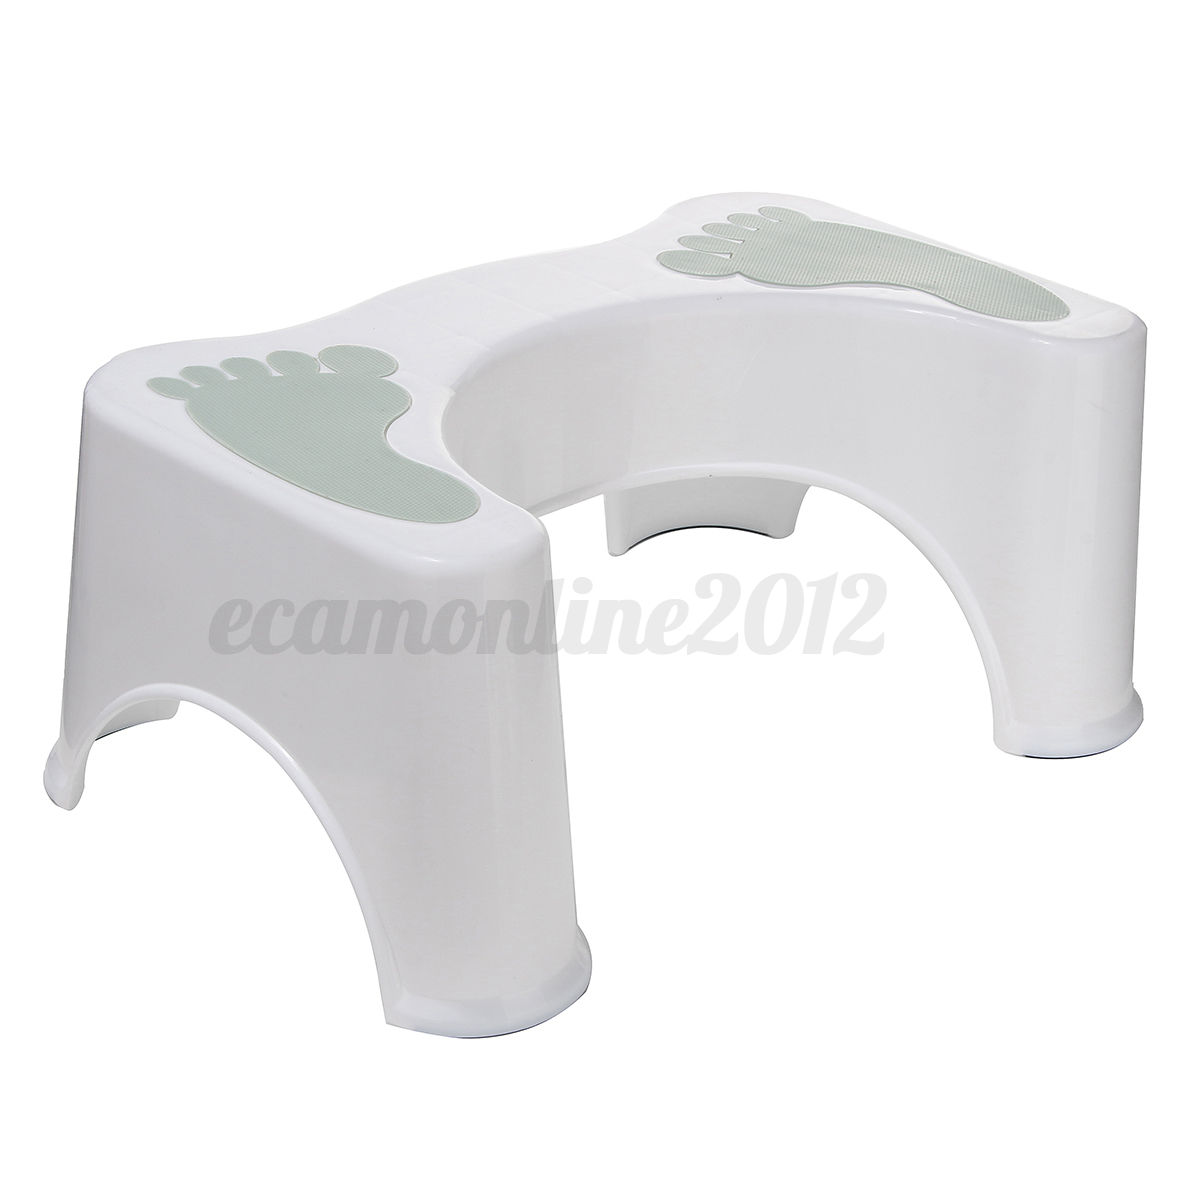 Non slip squatty potty toilet step stool bathroom aid - How to use the bathroom when constipated ...